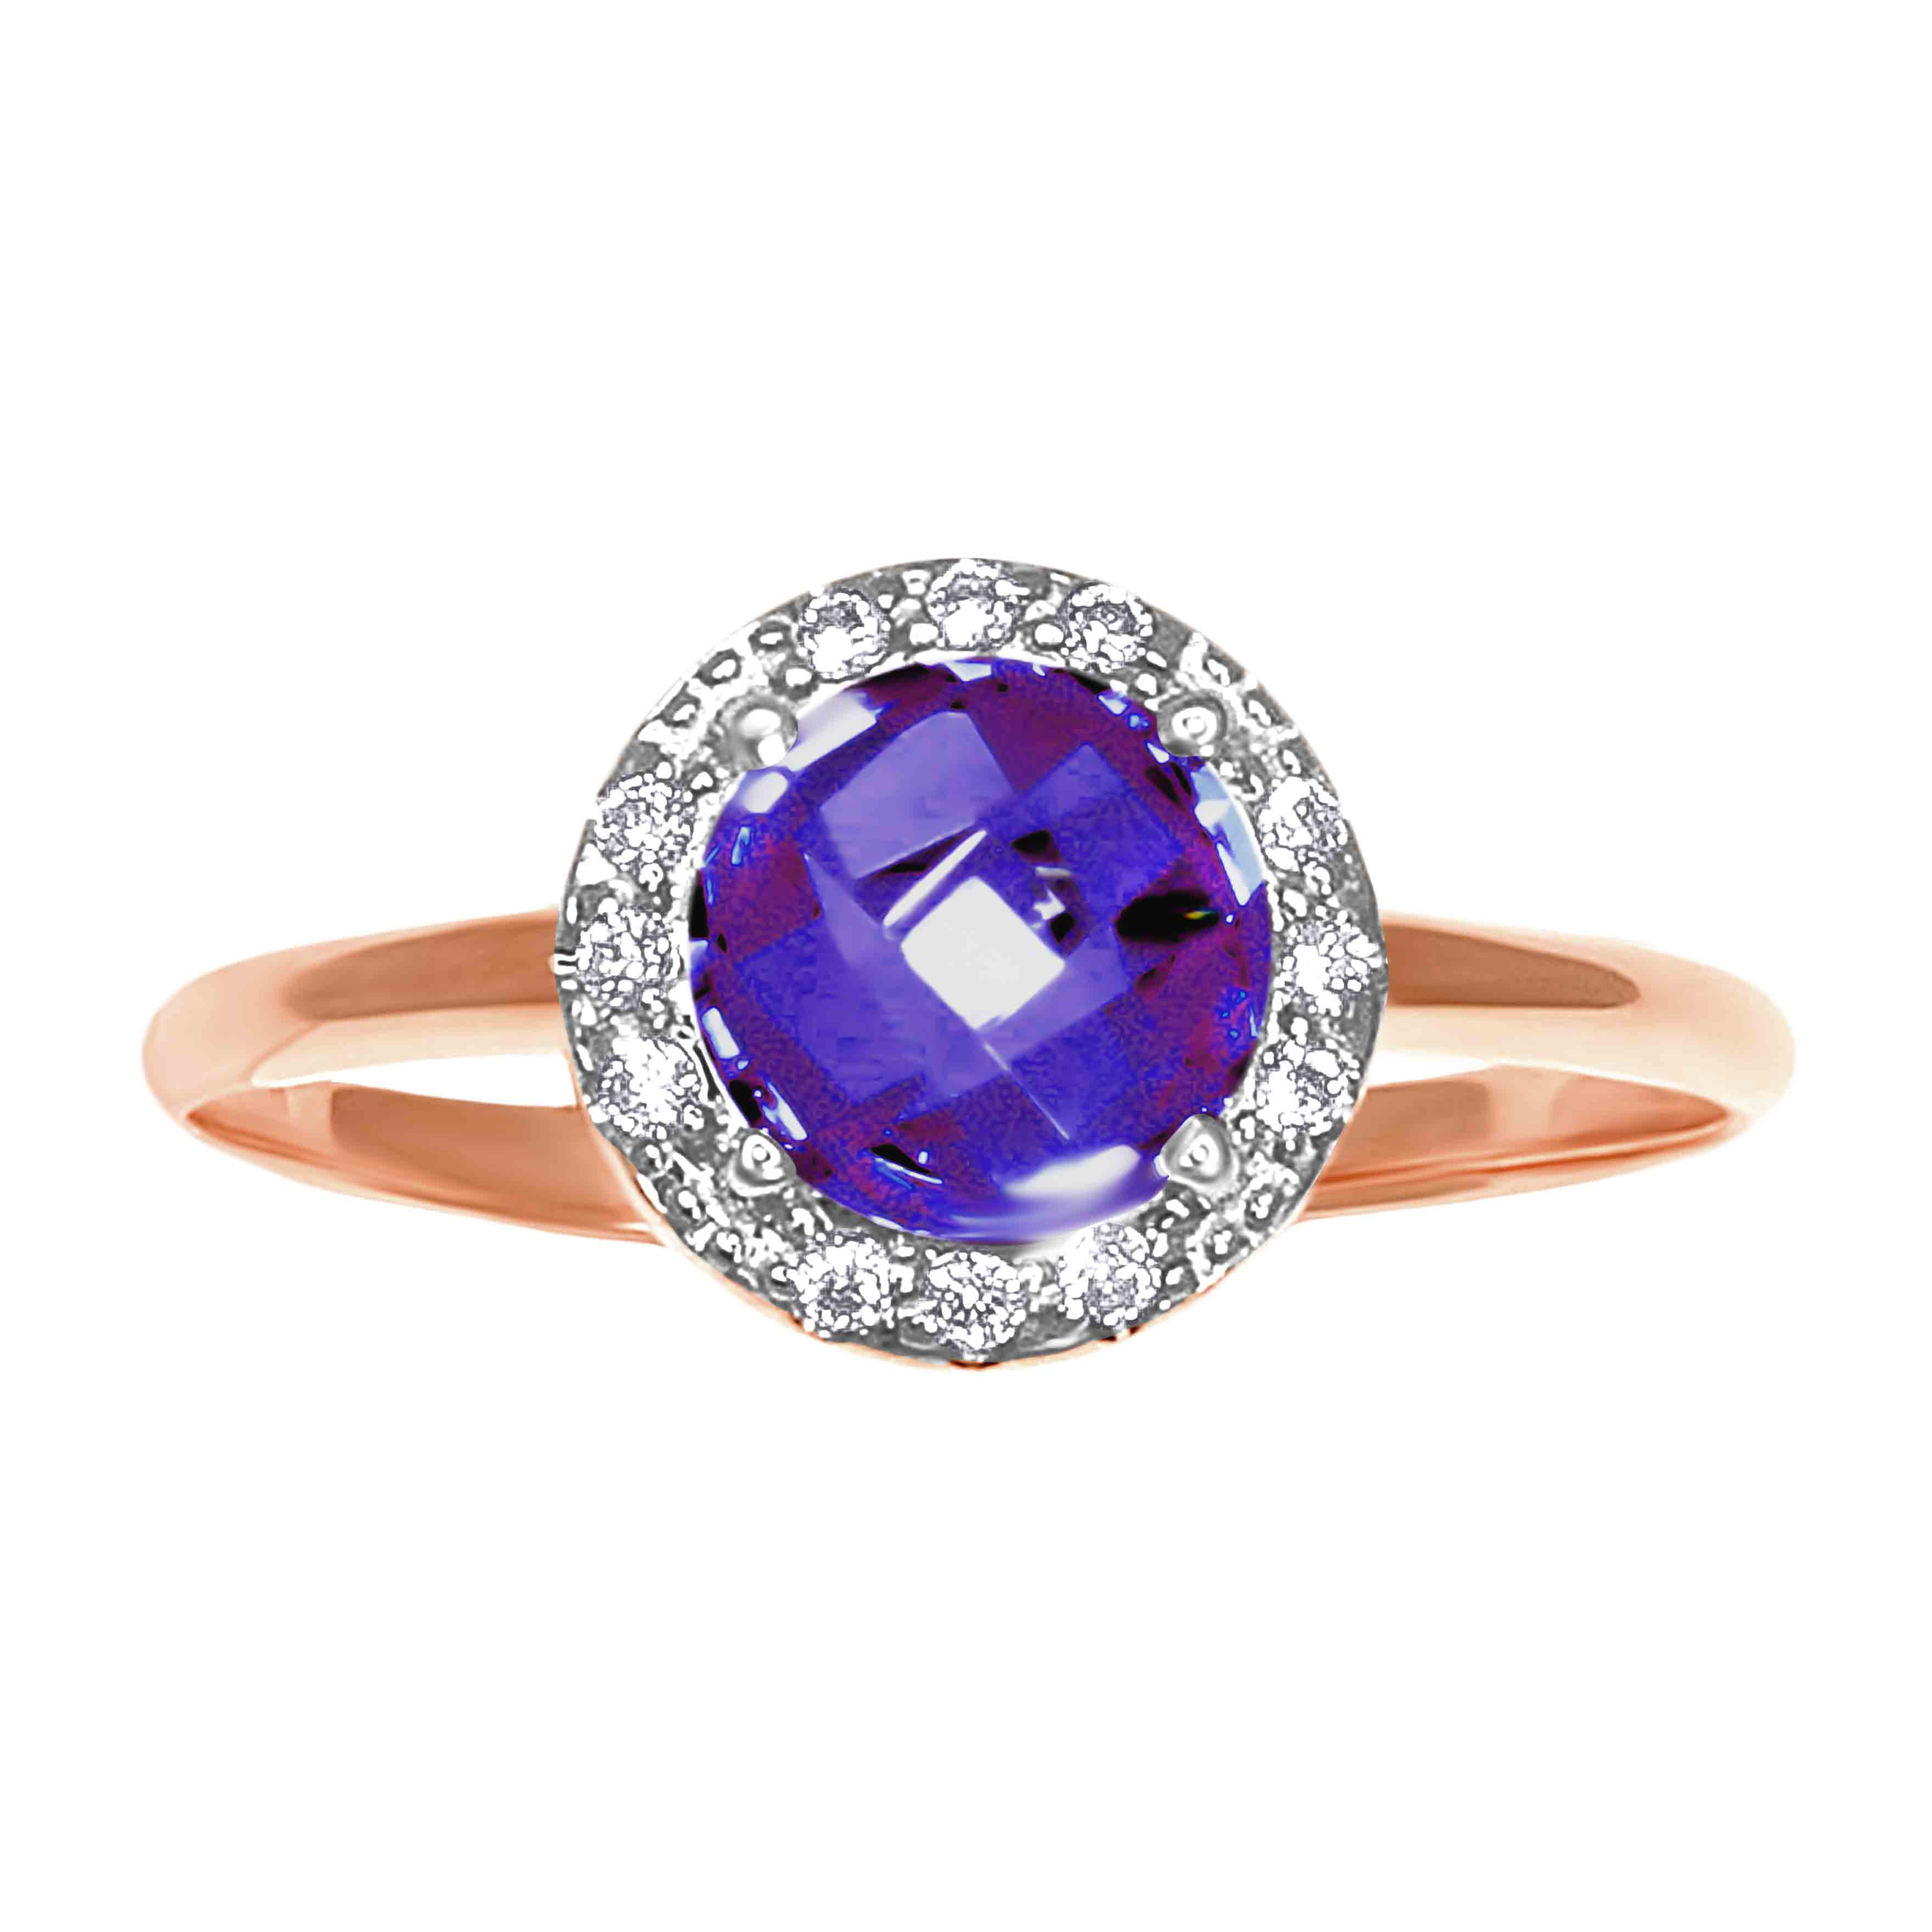 Rose-cut Amethyst with CZ Halo Ring. View 2